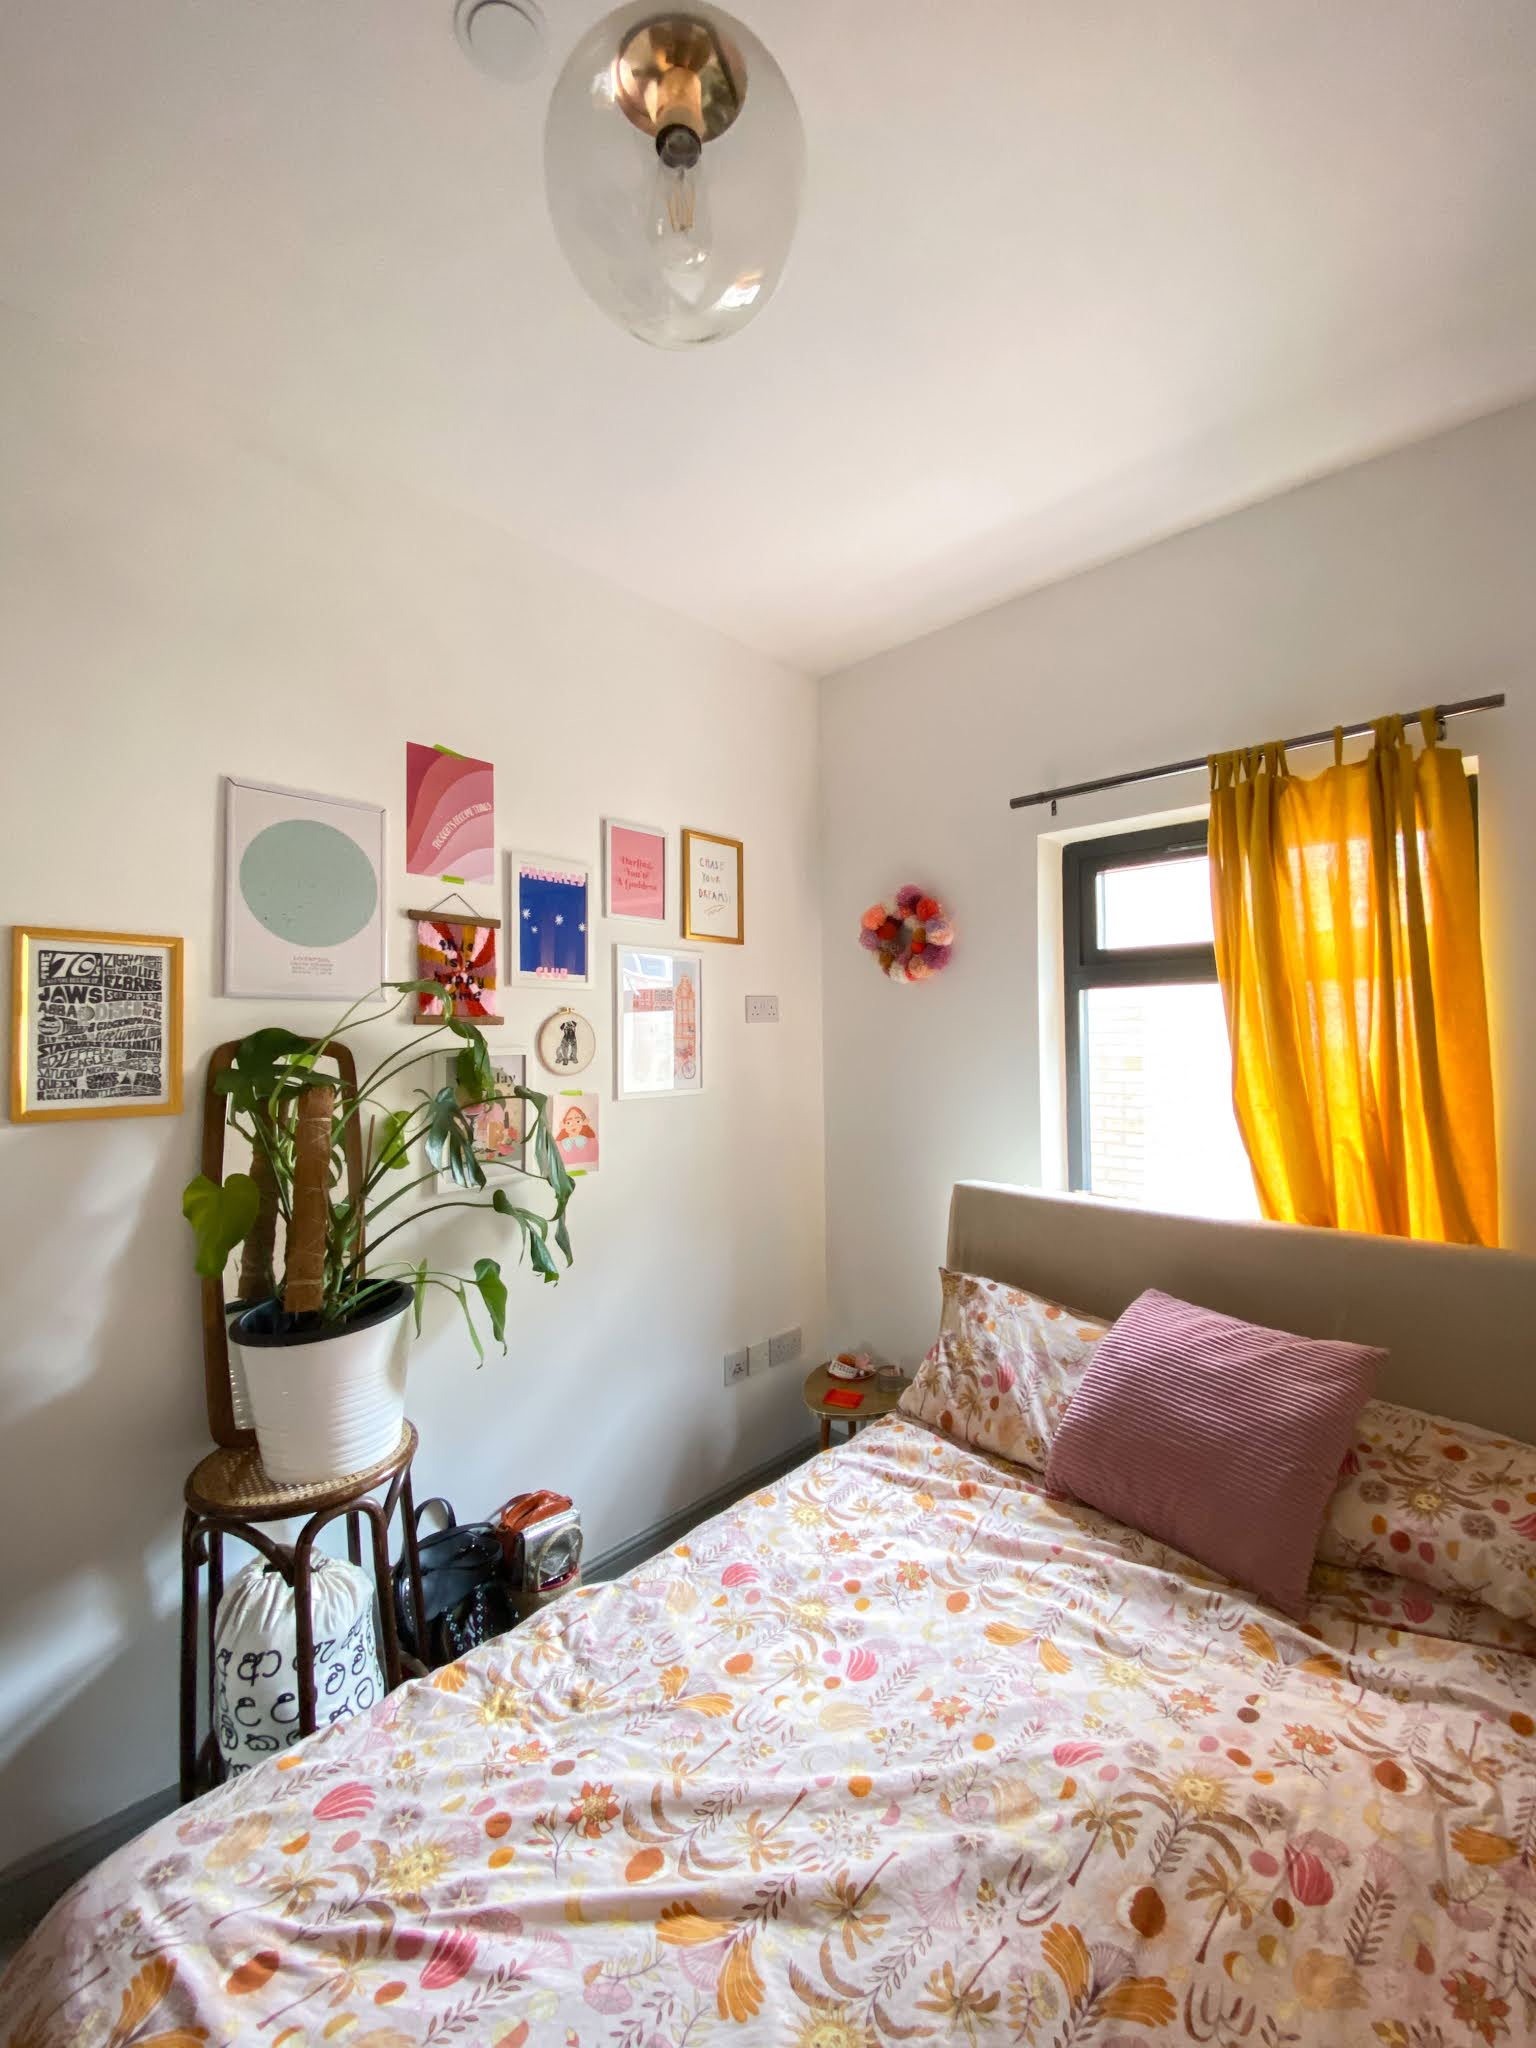 white walled bedroom with houseplants, gallery wall of bright prints, pink and mustard sun and moon print bedding and mustard yellow curtains